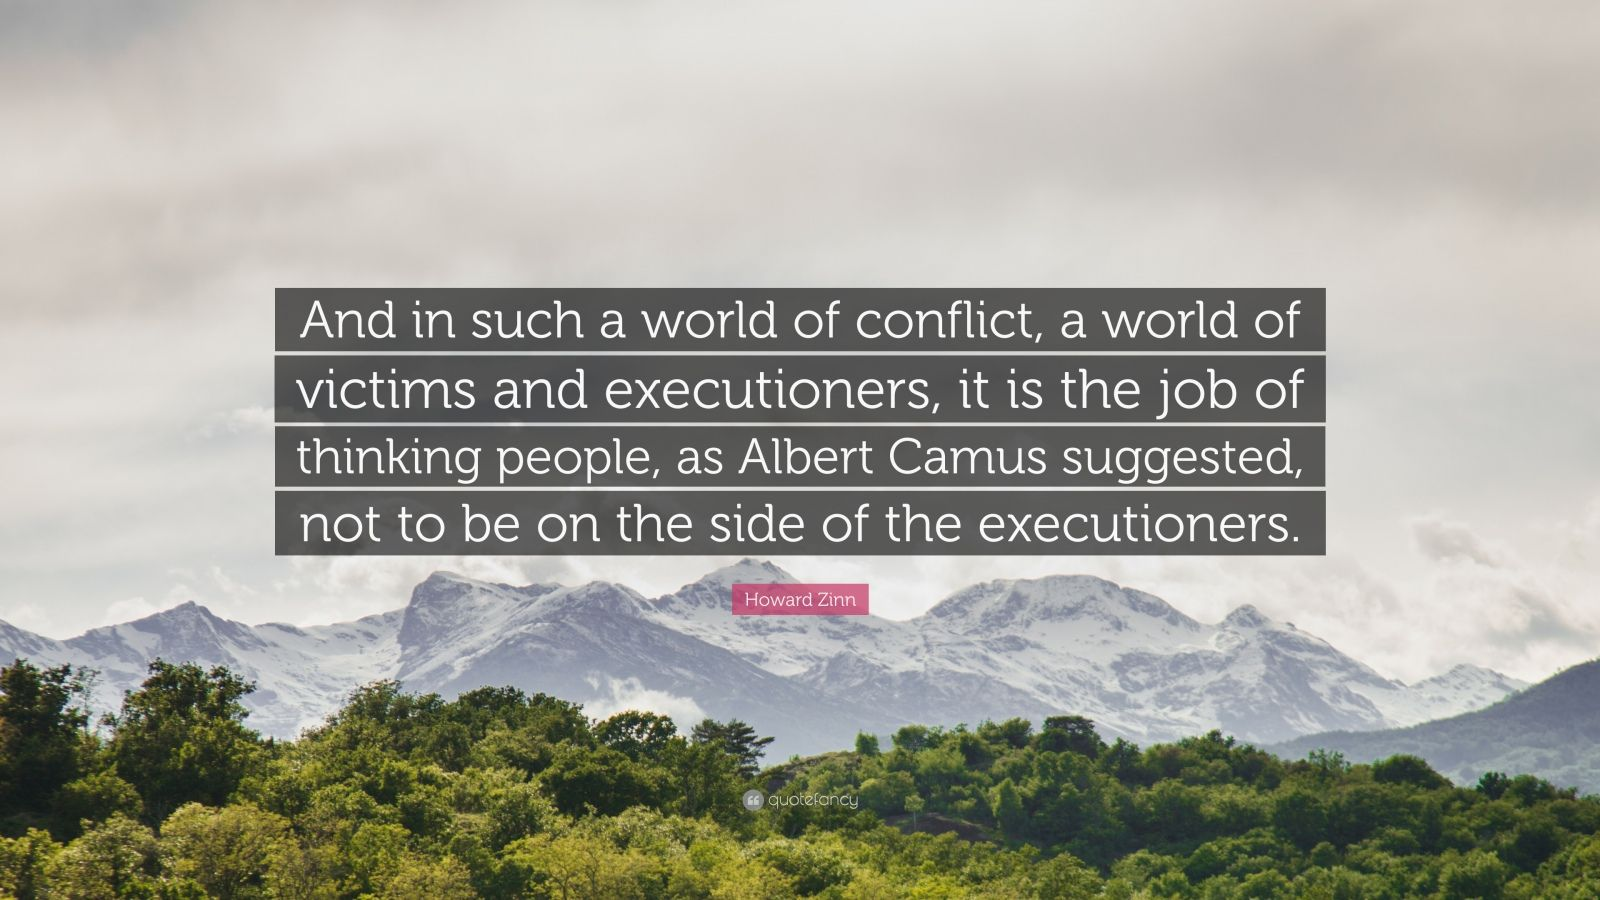 """Howard Zinn Quote: """"And in such a world of conflict, a world of victims and executioners, it is the job of thinking people, as Albert Camus suggested, not to be on the side of the executioners."""""""